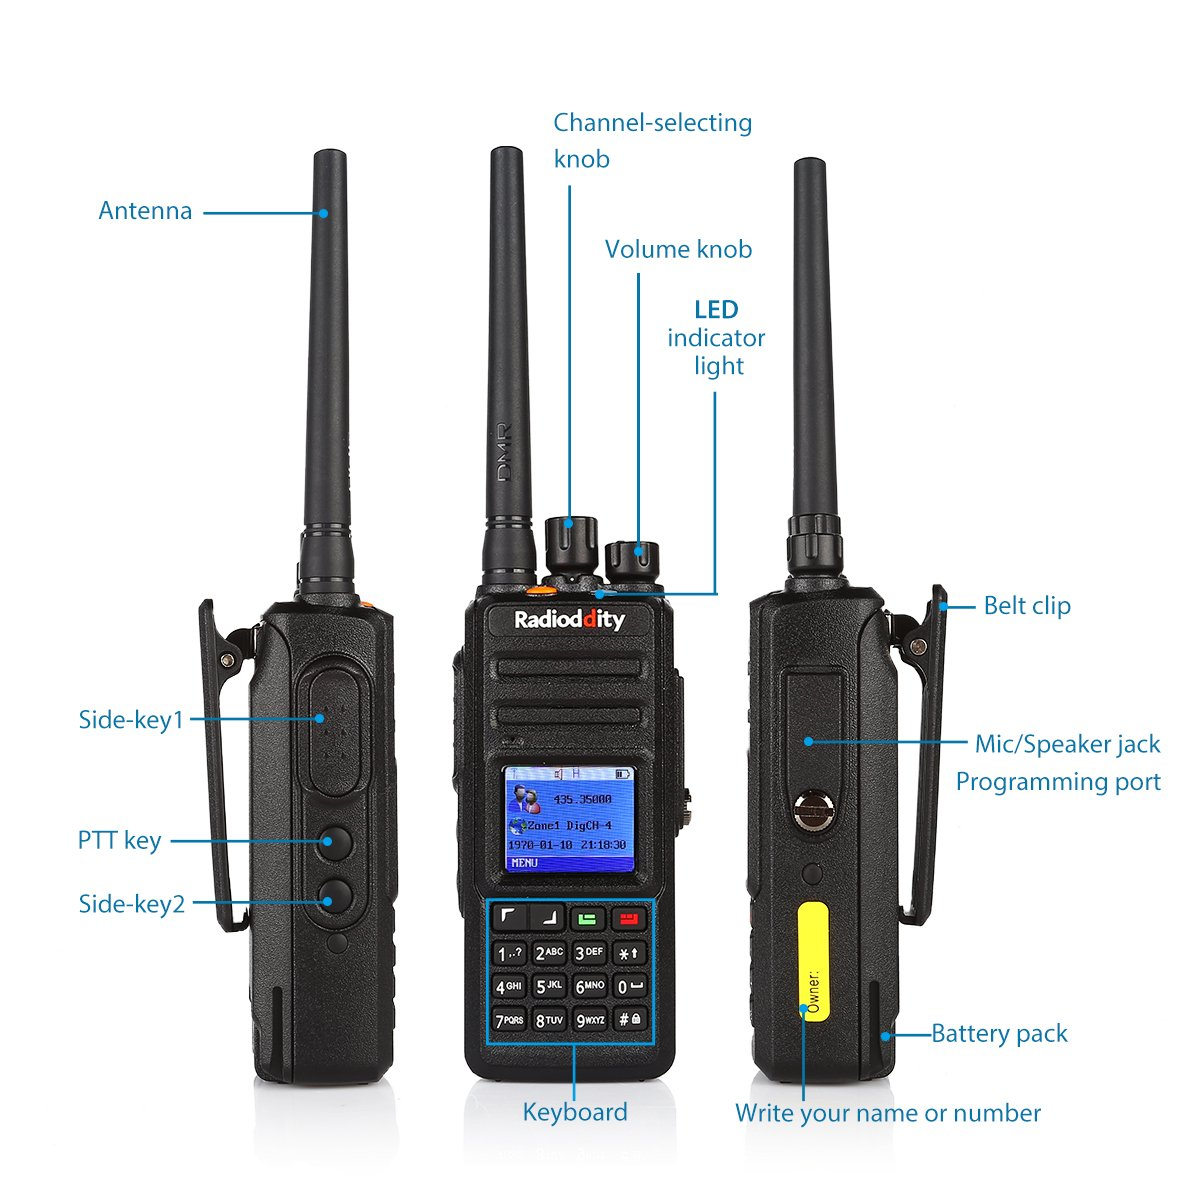 Radioddity GD-55 Plus 10W IP67 Waterproof UHF 400-470MHz 256CH 2800mAh DMR Digital Two Way Radio Ham Radio Compatible with Mototrbo Dual Time Slot, with Free Programming Cable and 2 Antennas by Radioddity (Image #8)